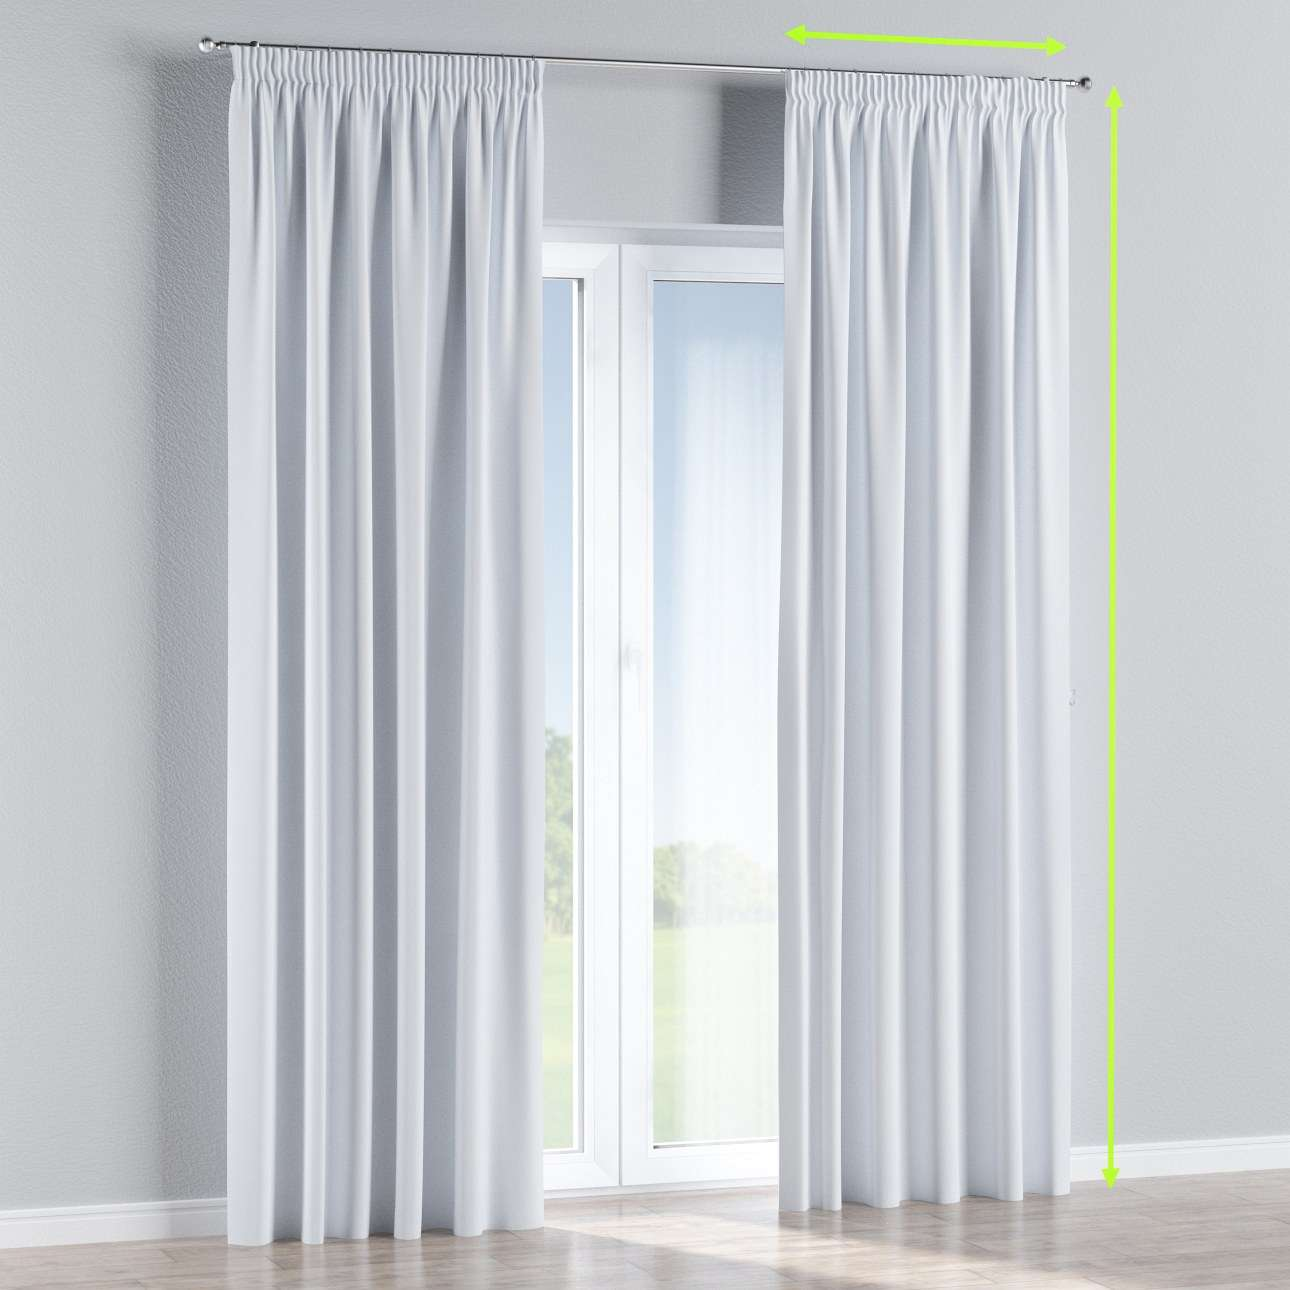 Pencil pleat curtain in collection Blackout, fabric: 269-01